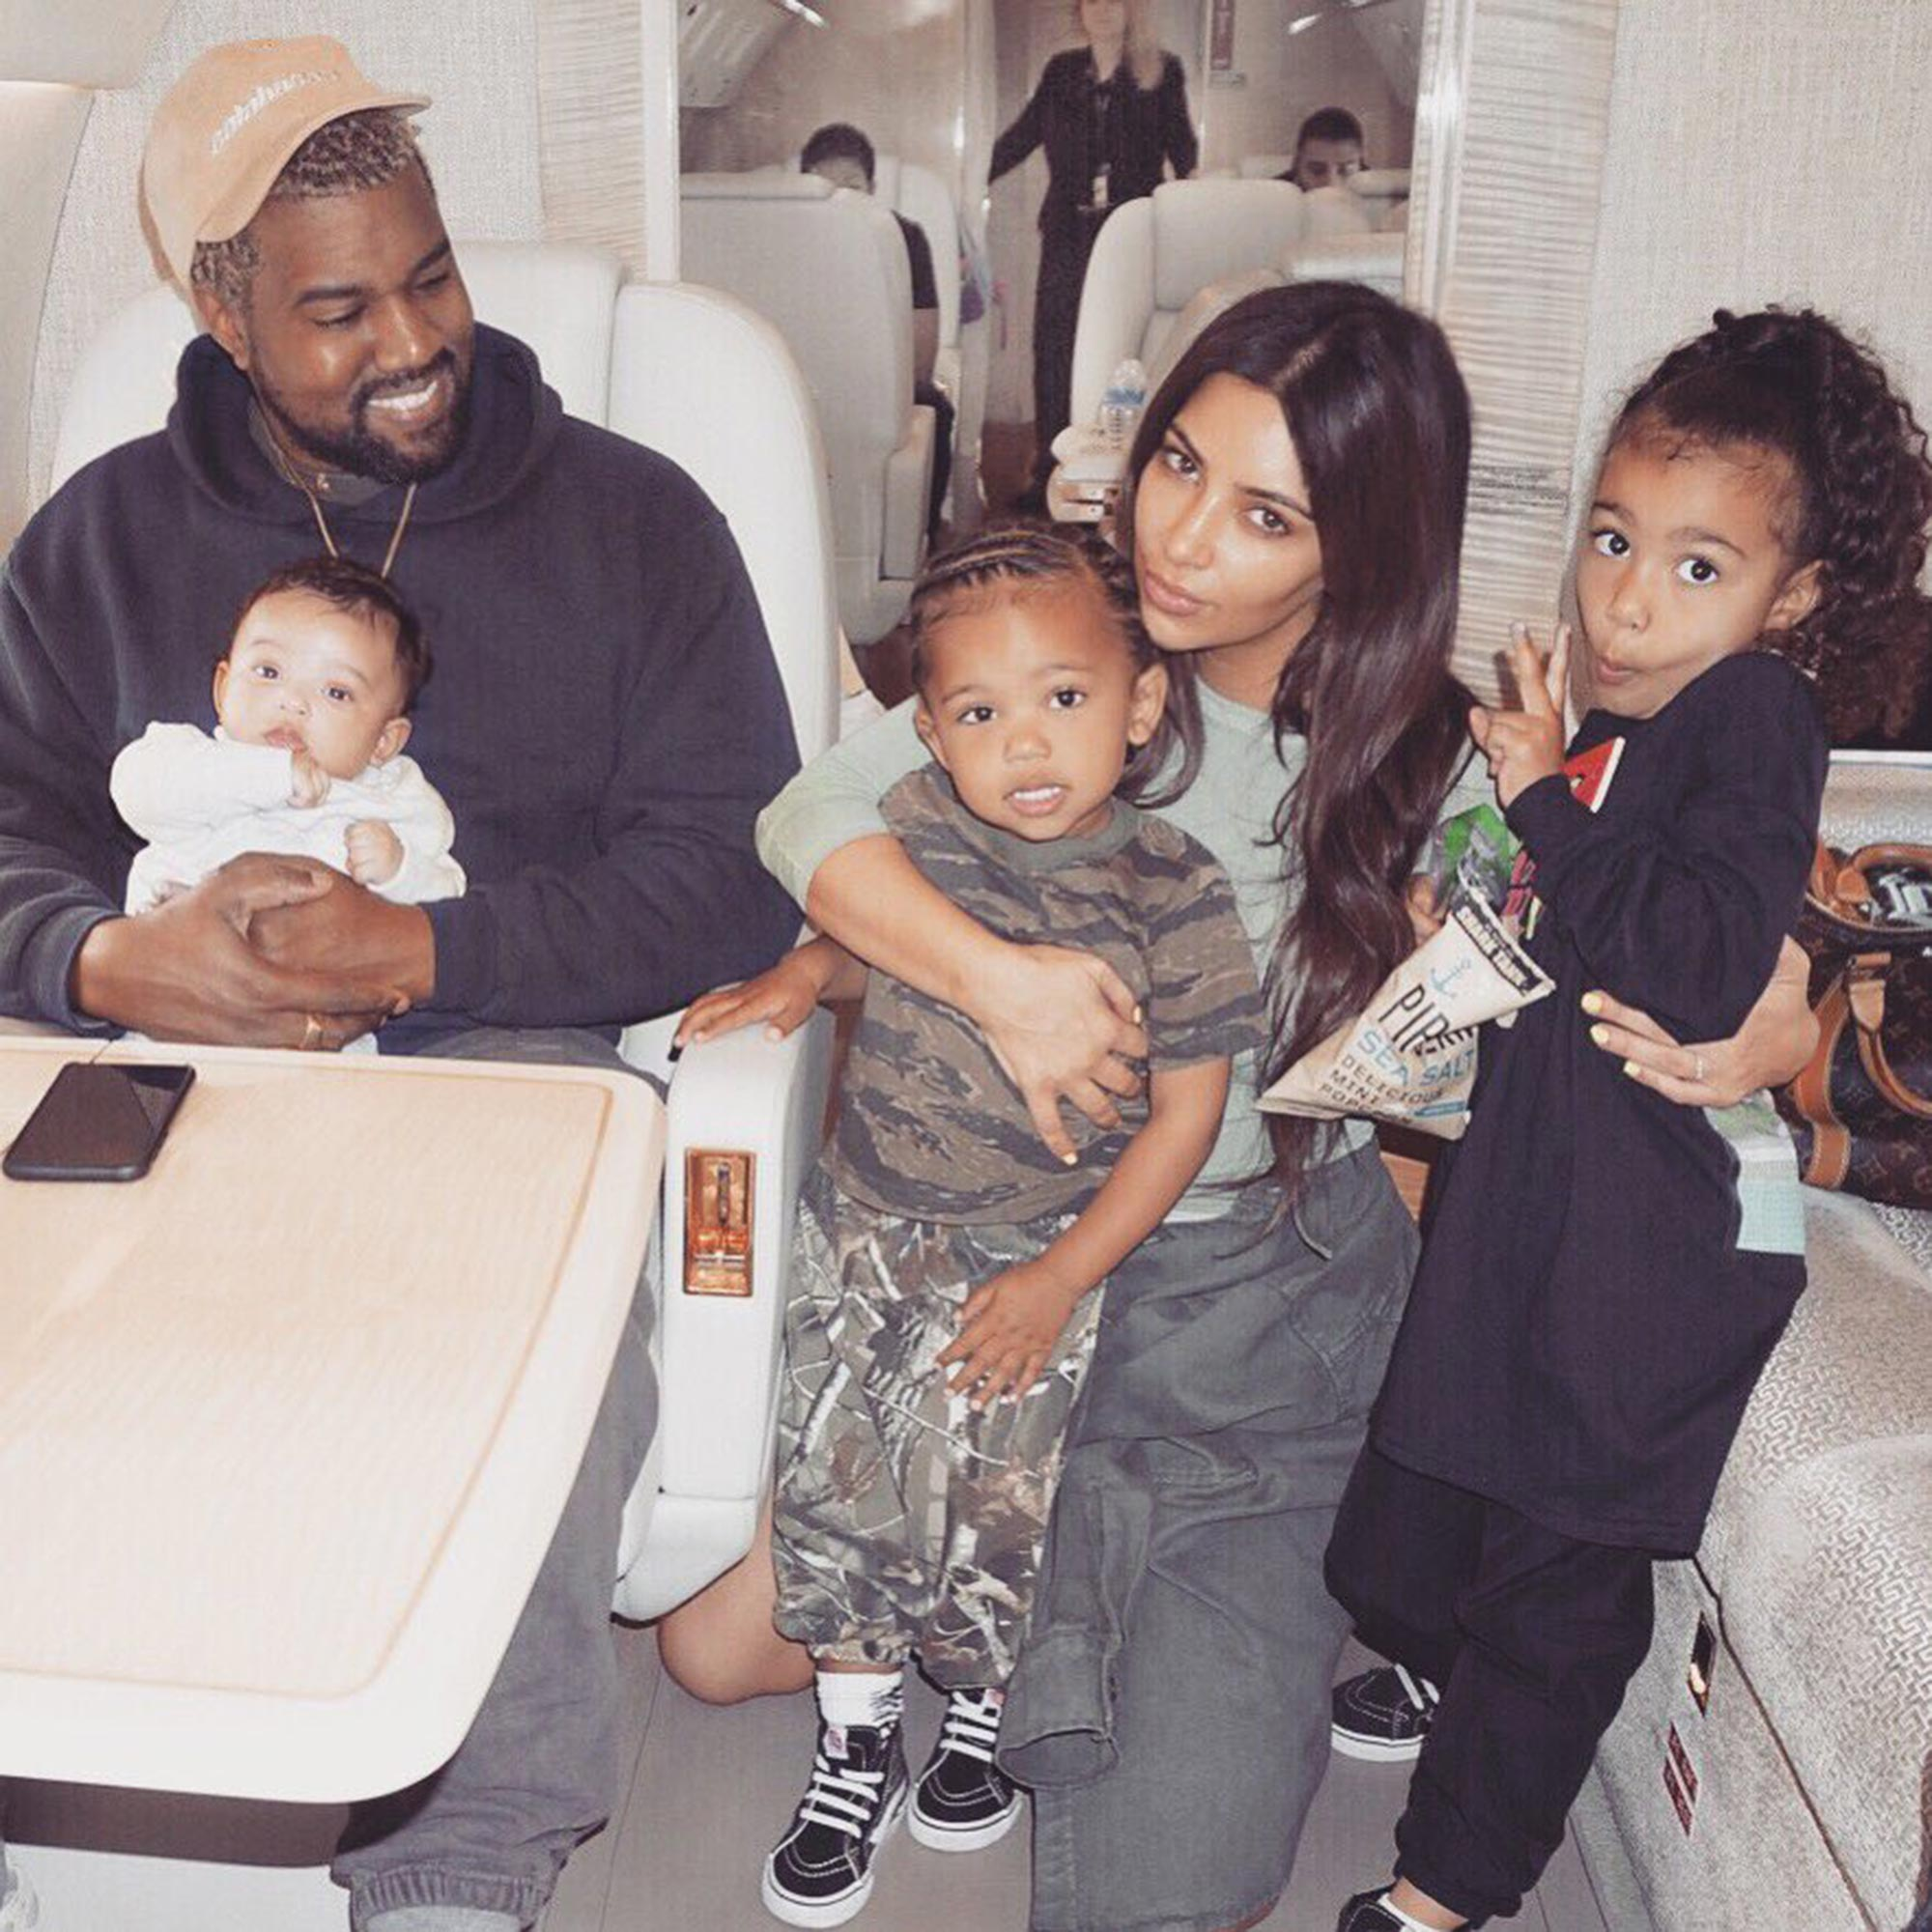 Why Kim Kardashian and Kanye West Are Using a Different Gestational Surrogate for Baby No. 4